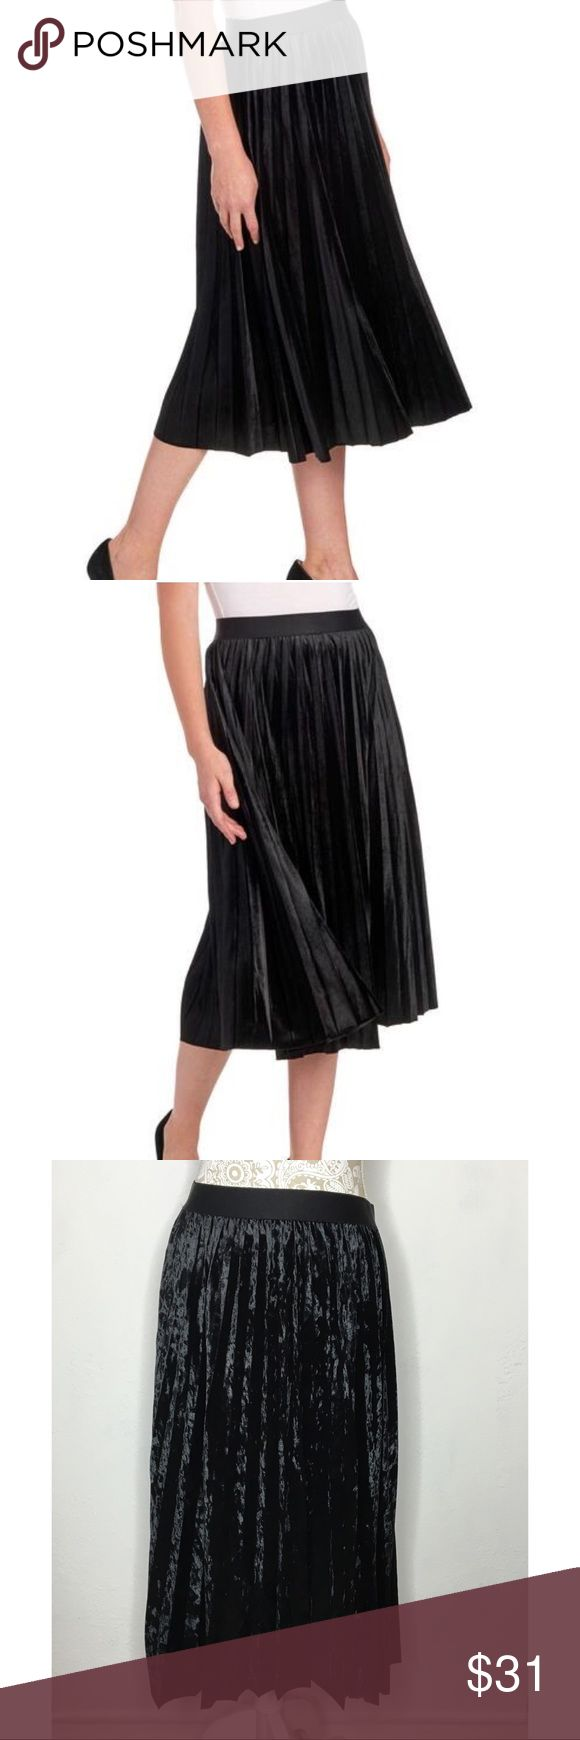 """NWT Max Studio black velvet pleated midi skirt M NWT Max Studio supple textured velvet midi skirt. Asymmetrical hem and tailored with tiny pleats that makes it perfect for work or a holiday soirée. Size Medium  Pull on. Length: 30"""" 93% Polyester 7%spandex.  Hand wash; line dry. Brand new with tags. 98$ retail. #max #skirt #black #velvet #new #nwt #midi #career #formal #holiday #pleats #stretch ❌no trades❌ Max Studio Skirts Midi"""